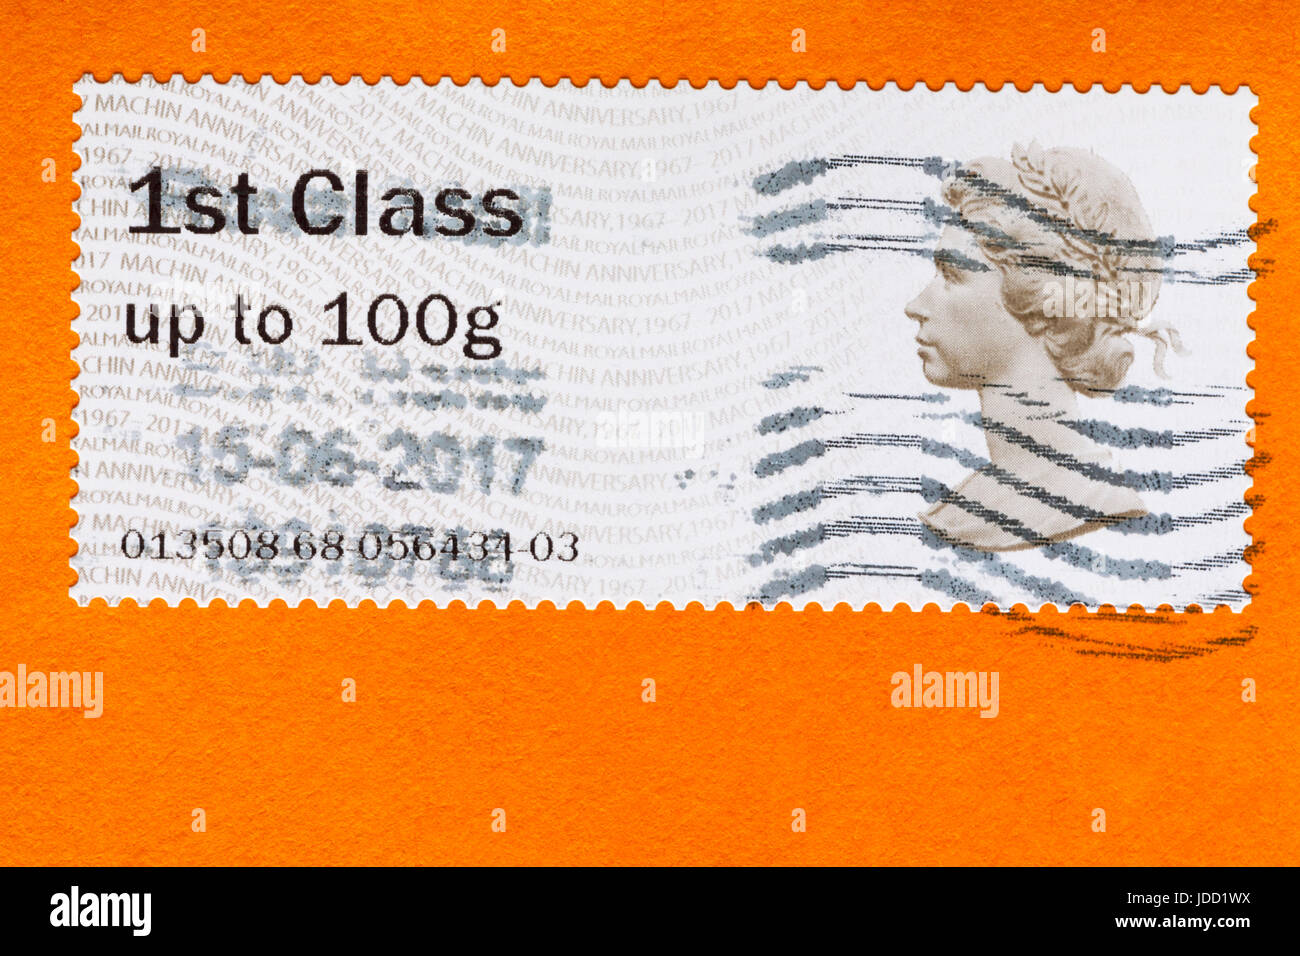 1st first class stamp up to 100g with Queen's head on orange envelope - Stock Image